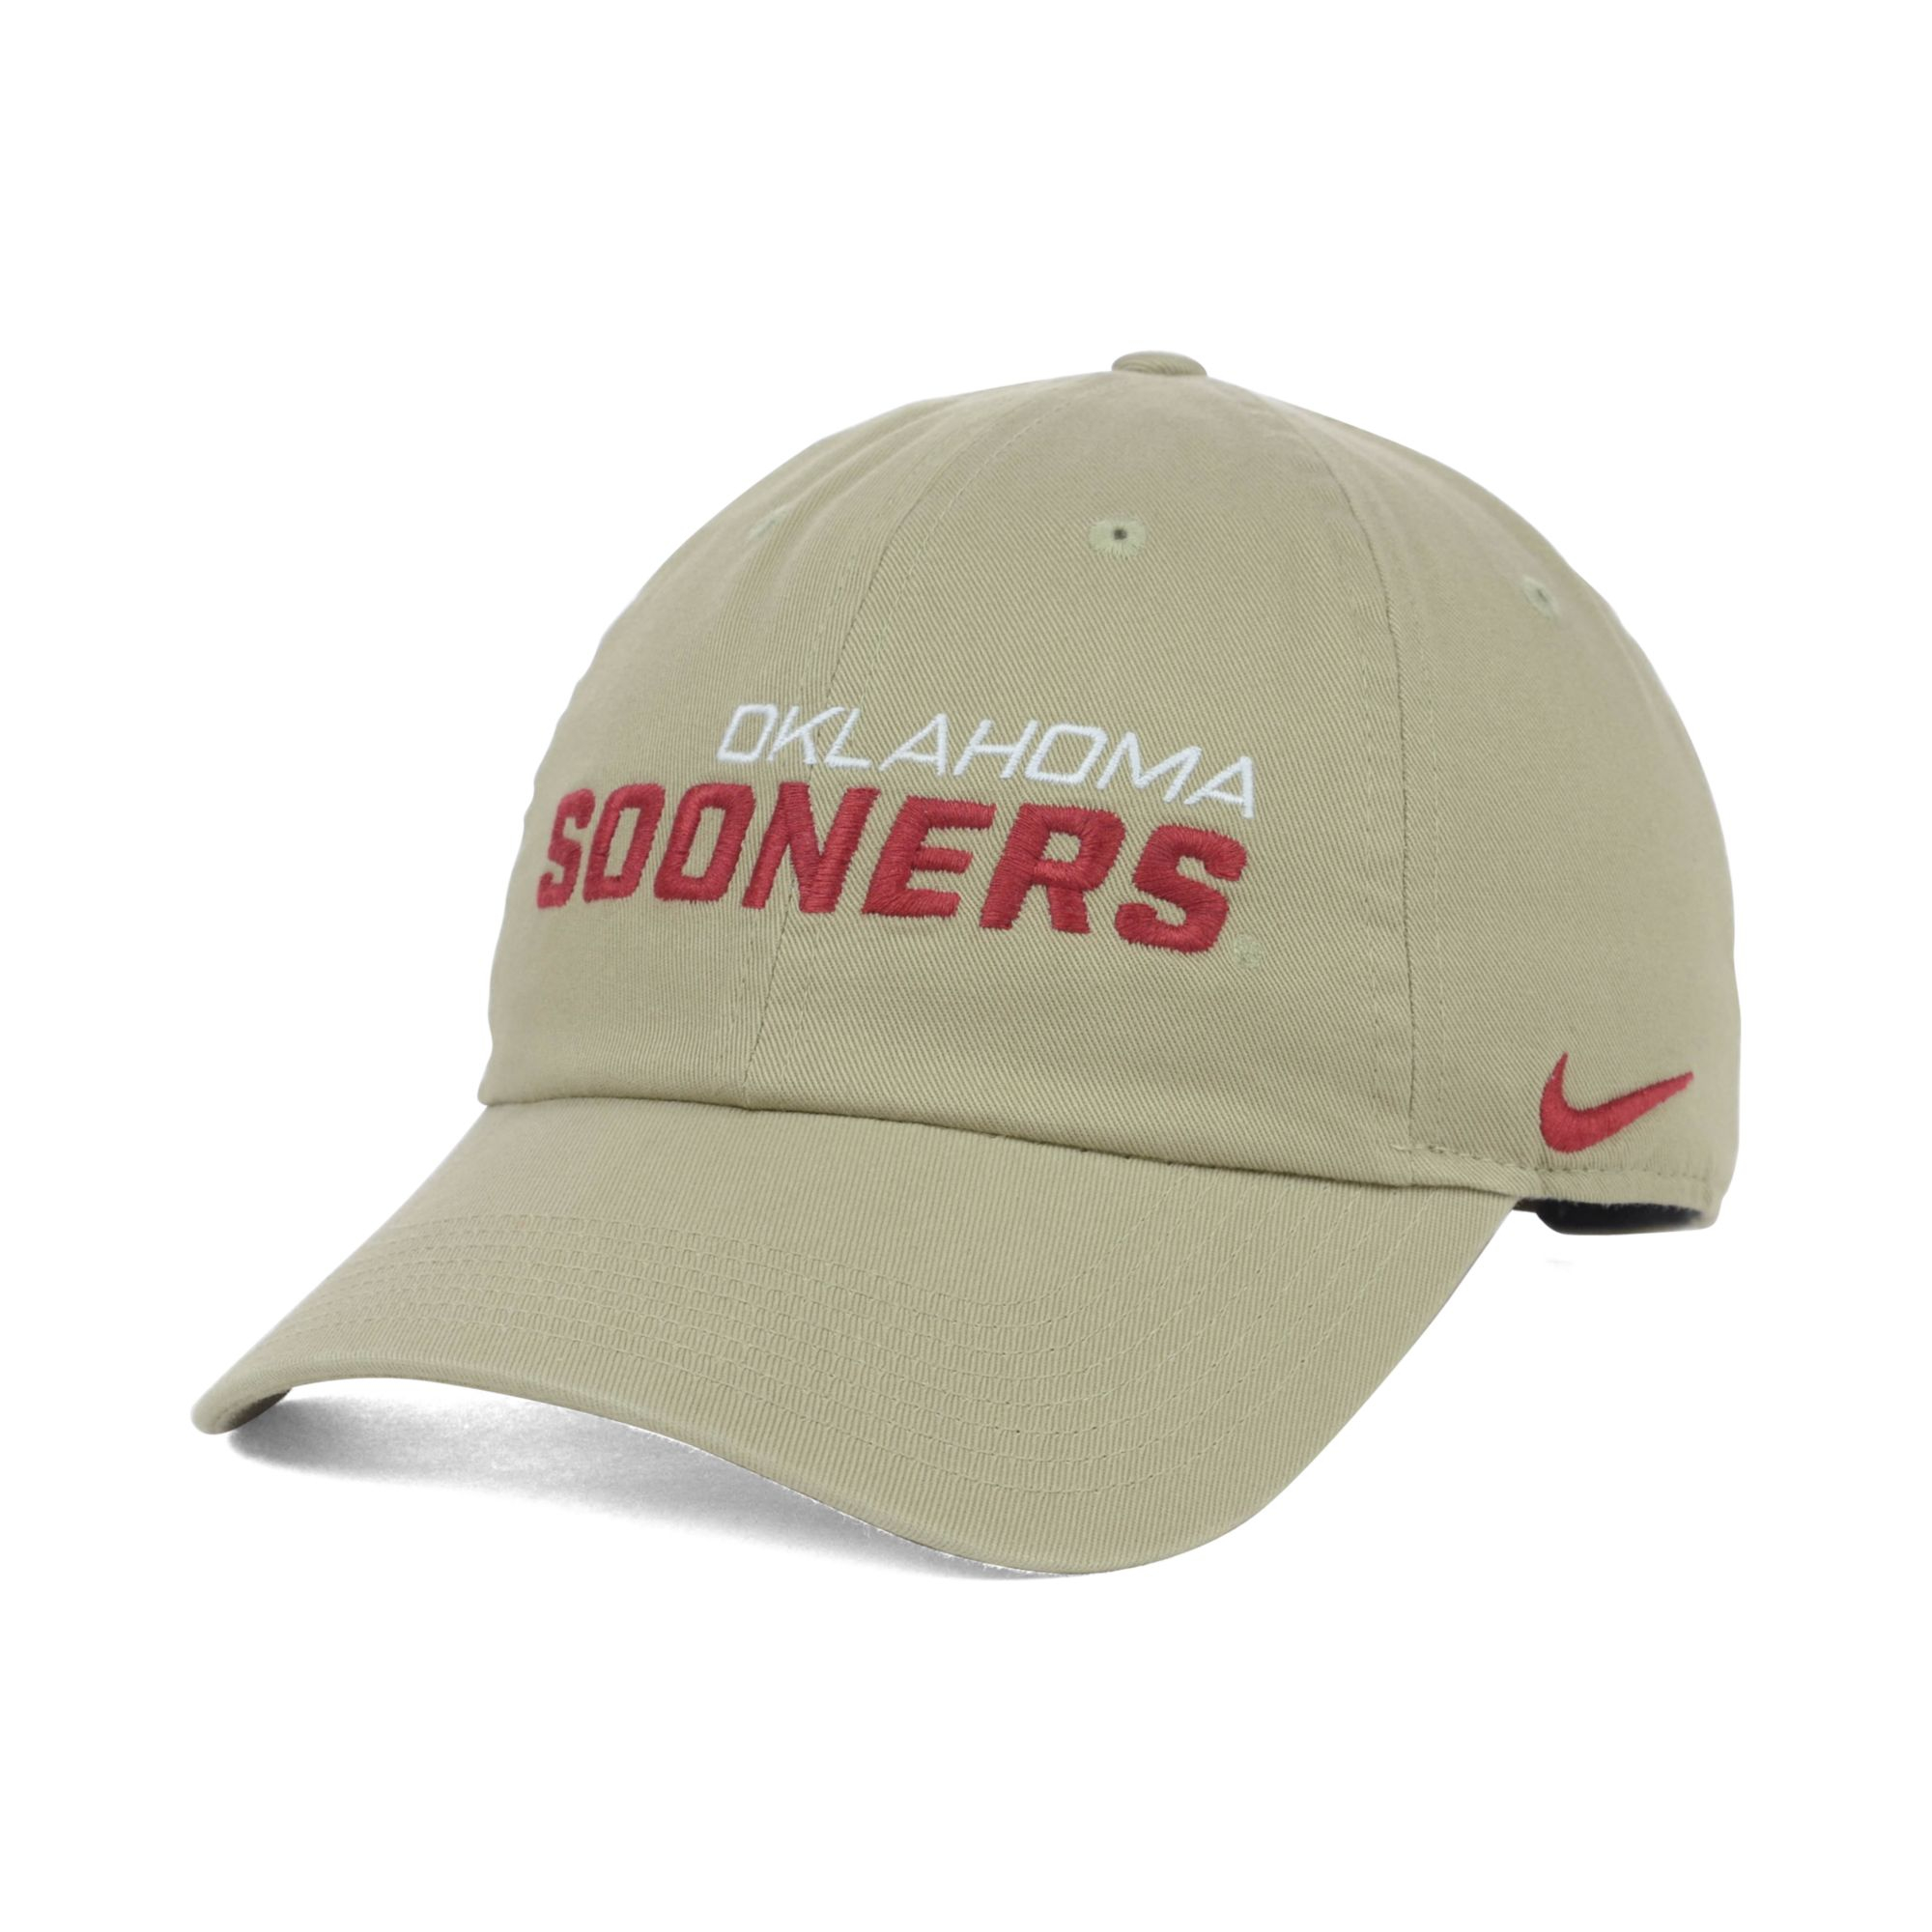 c7726248163 ... release date lyst nike oklahoma sooners heritage campus cap in natural  for men c444f d3fef ...